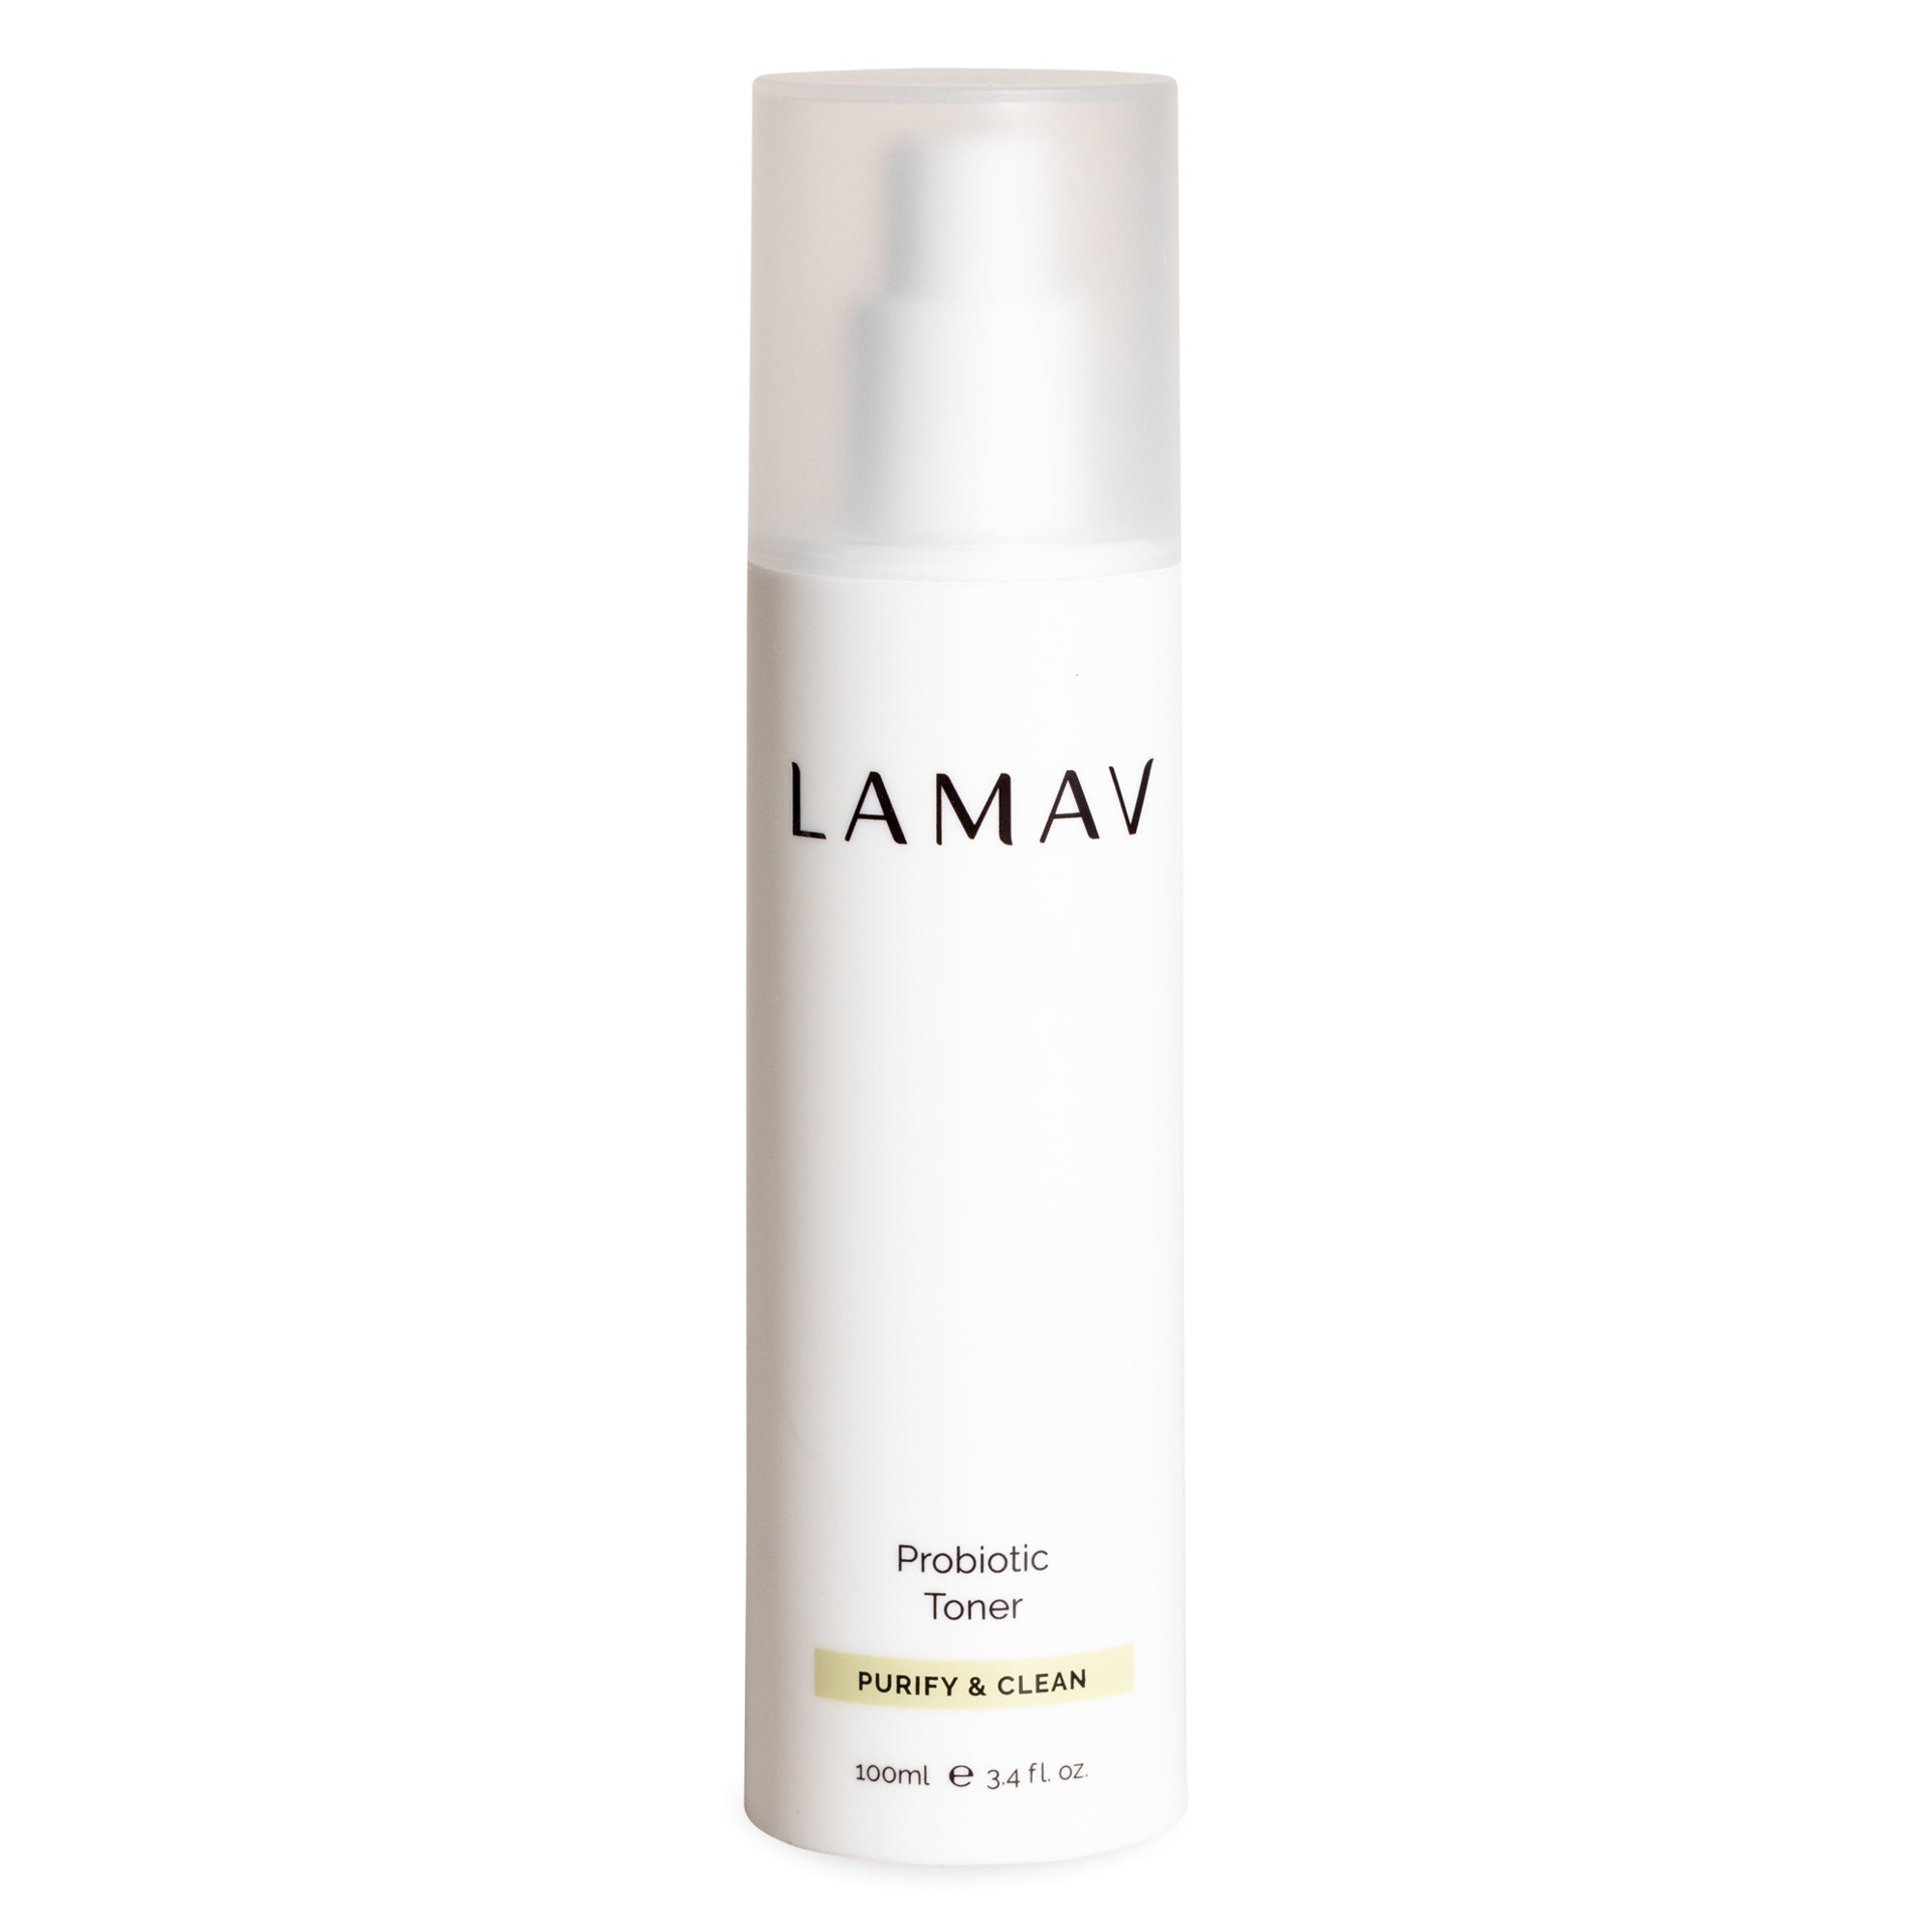 LaMav Probiotic Toner. A unique blend of probiotics that helps to balance the skin's microbiome while boosting skin's immune health for a vibrant, healthy complexion. Shop at Skinbase Beauty.